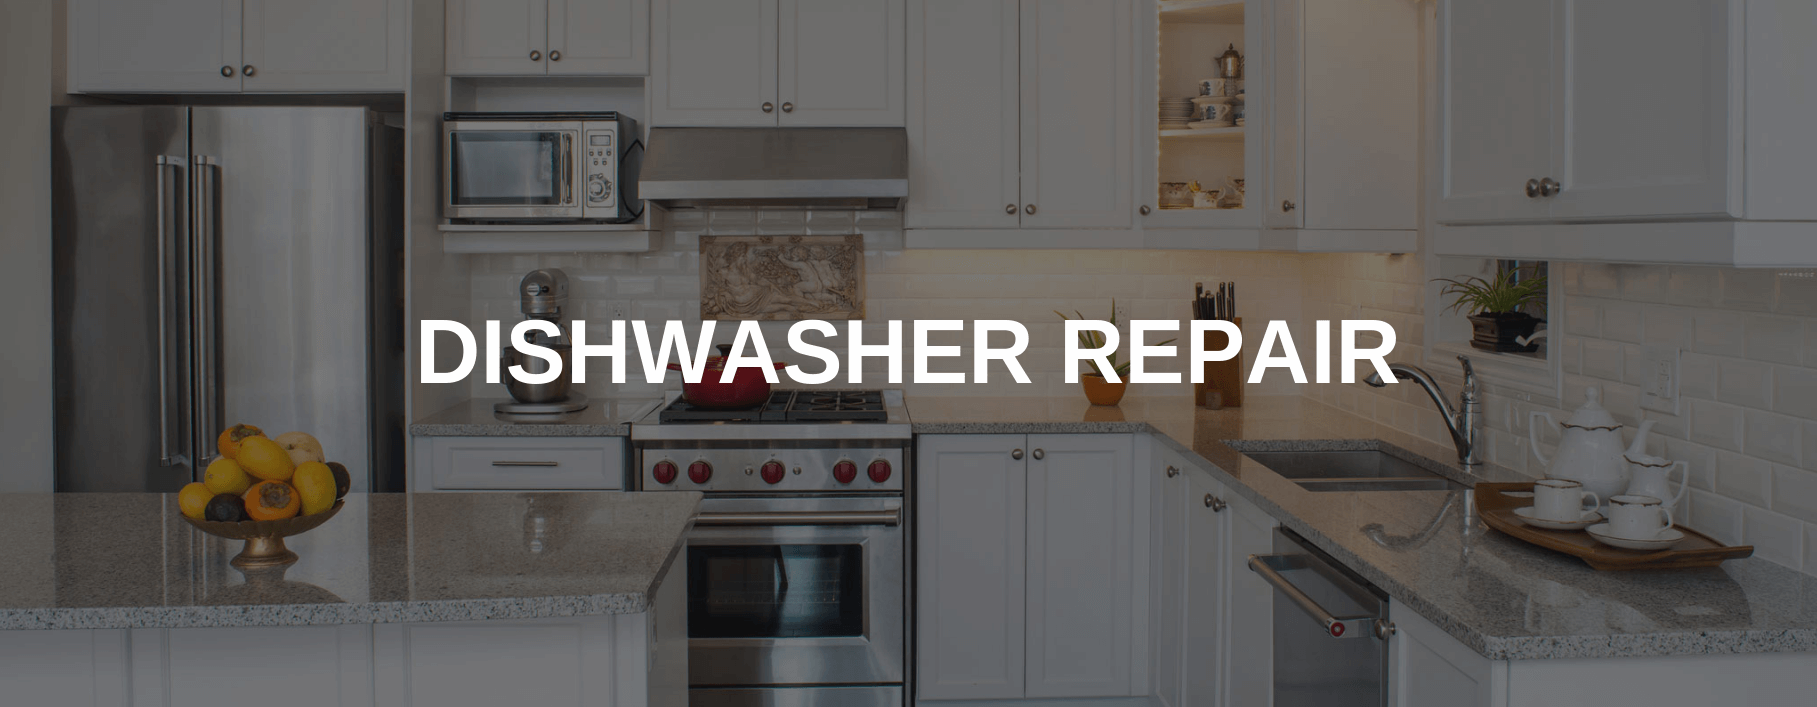 dishwasher repair chula vista